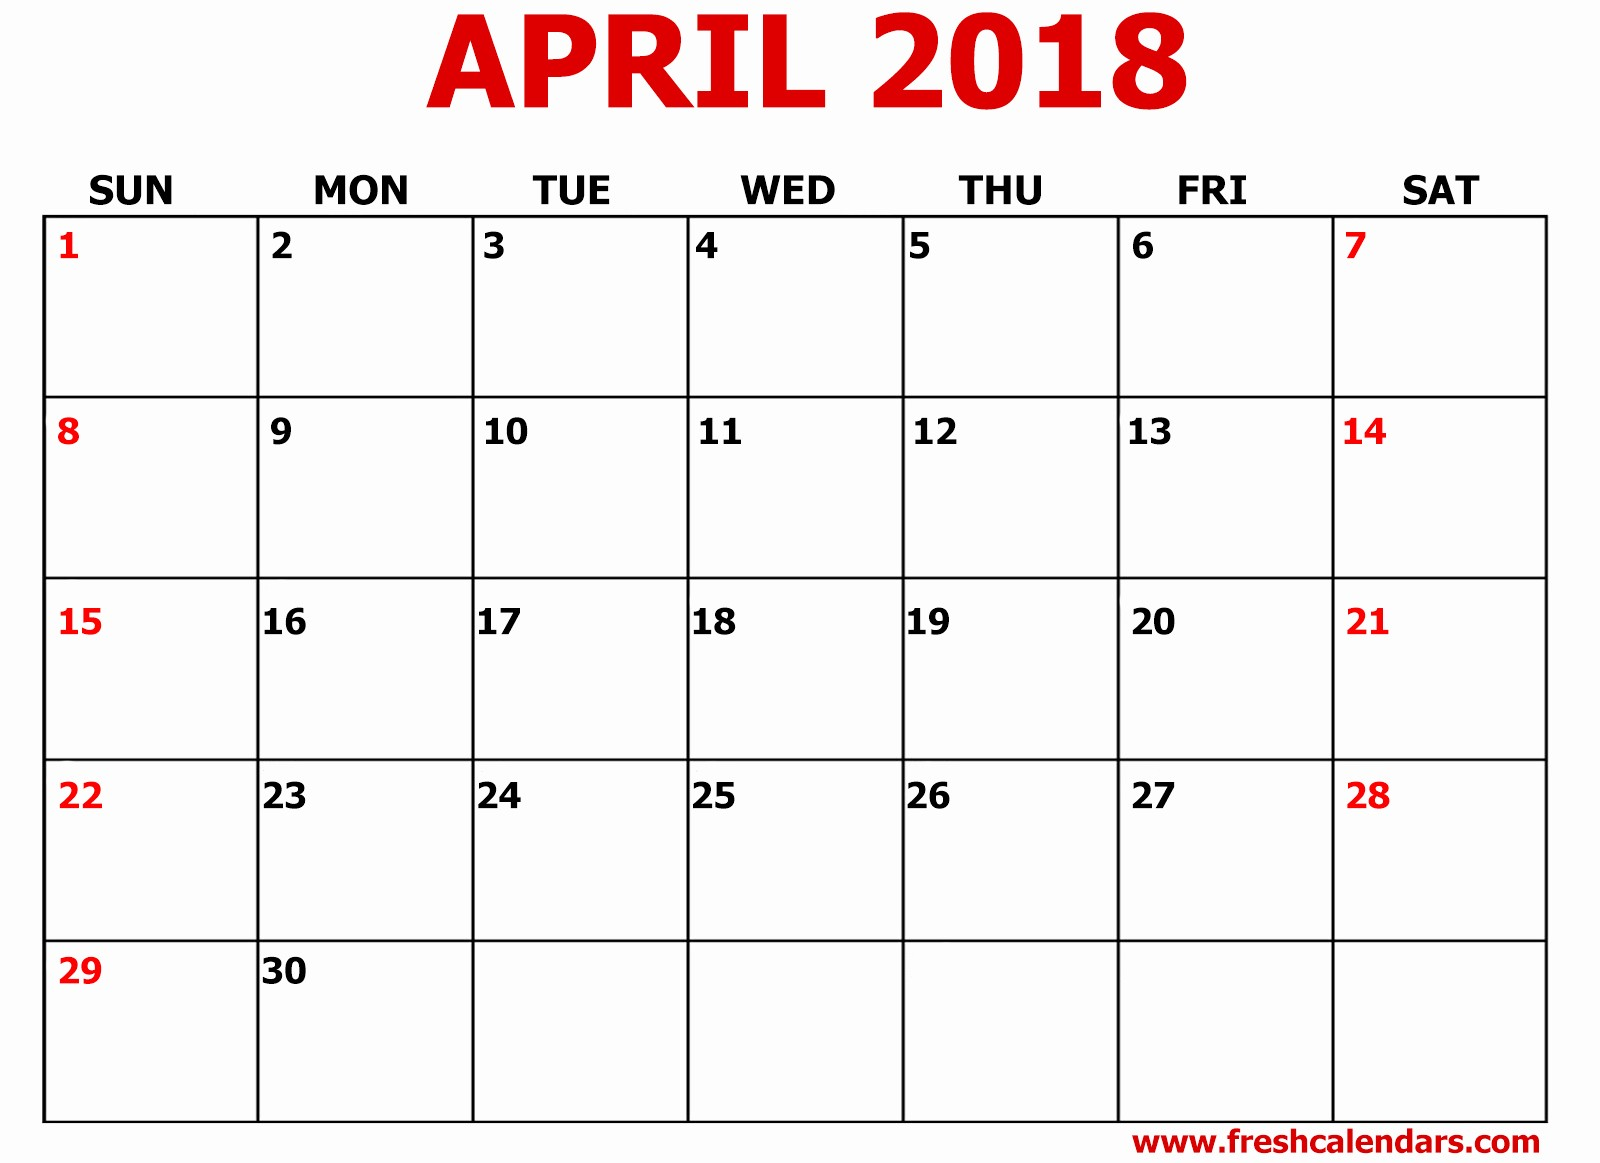 Blank April 2018 Calendar Template Awesome April 2018 Printable Calendar Pdf Free Download